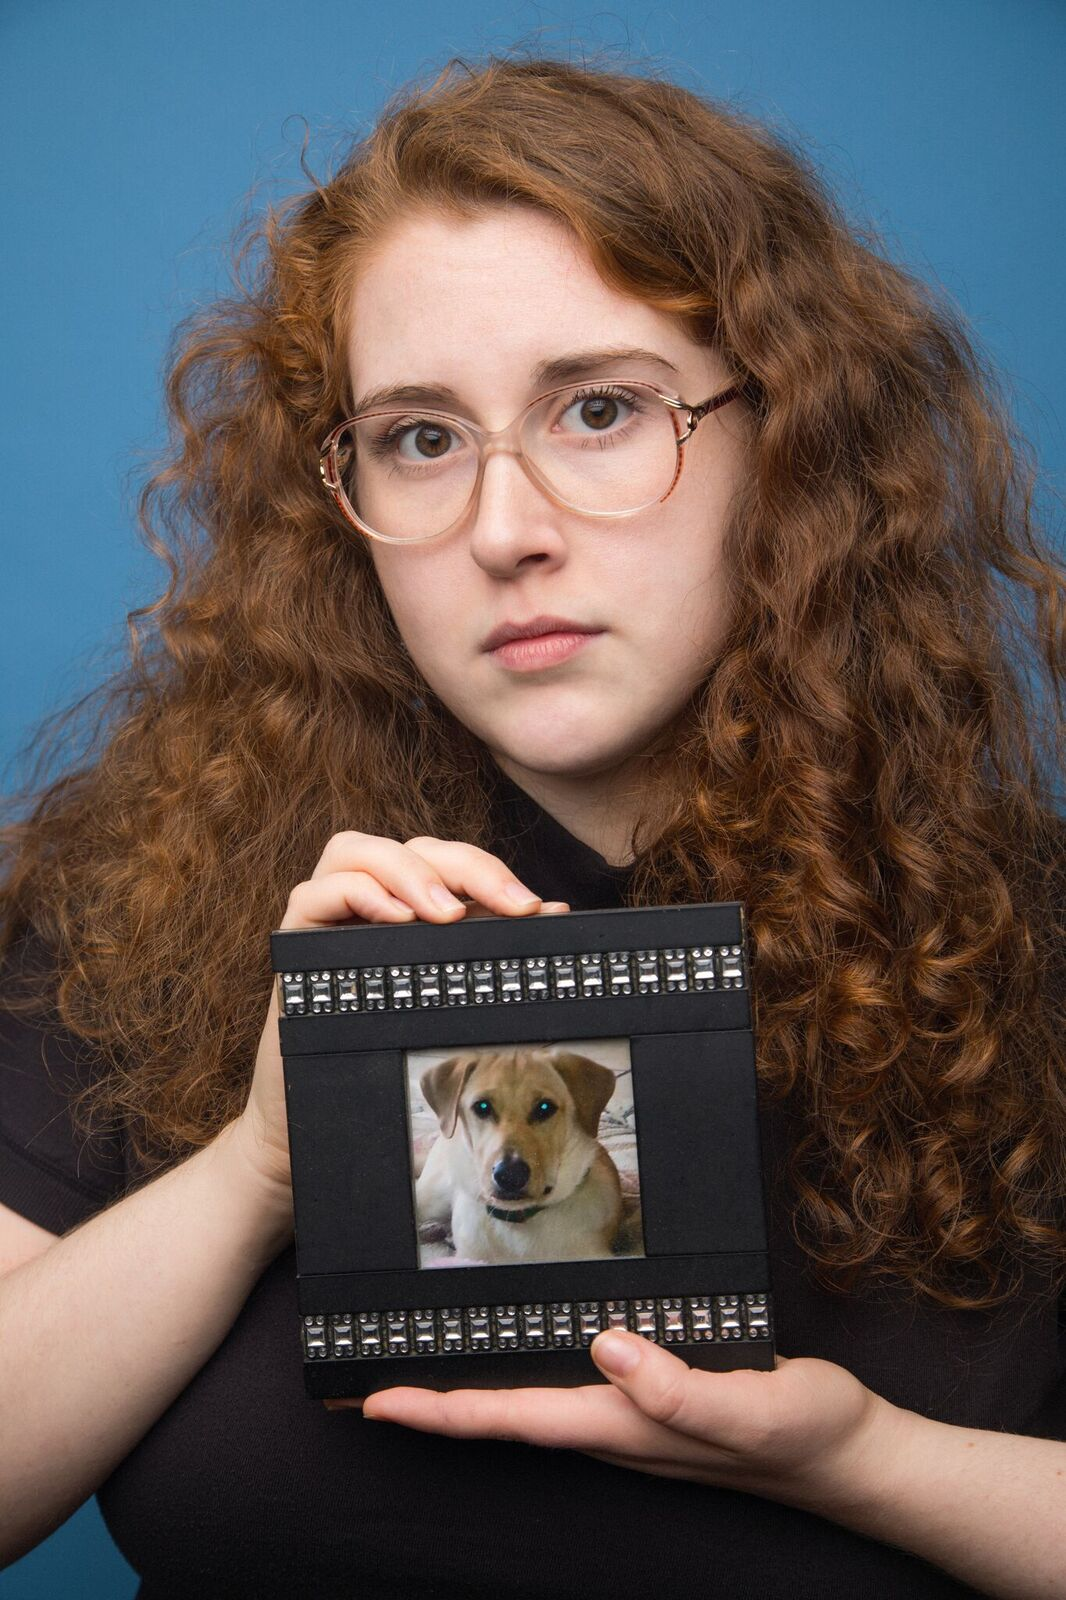 hi henlo - Brooke is a writer and comedian currently residing in Brooklyn NY. She enjoys watching trash TV and staring into the abyss for prolonged periods of time. She has previously been a part of the art school acid dropout collective and currently is performing stand up around the city.